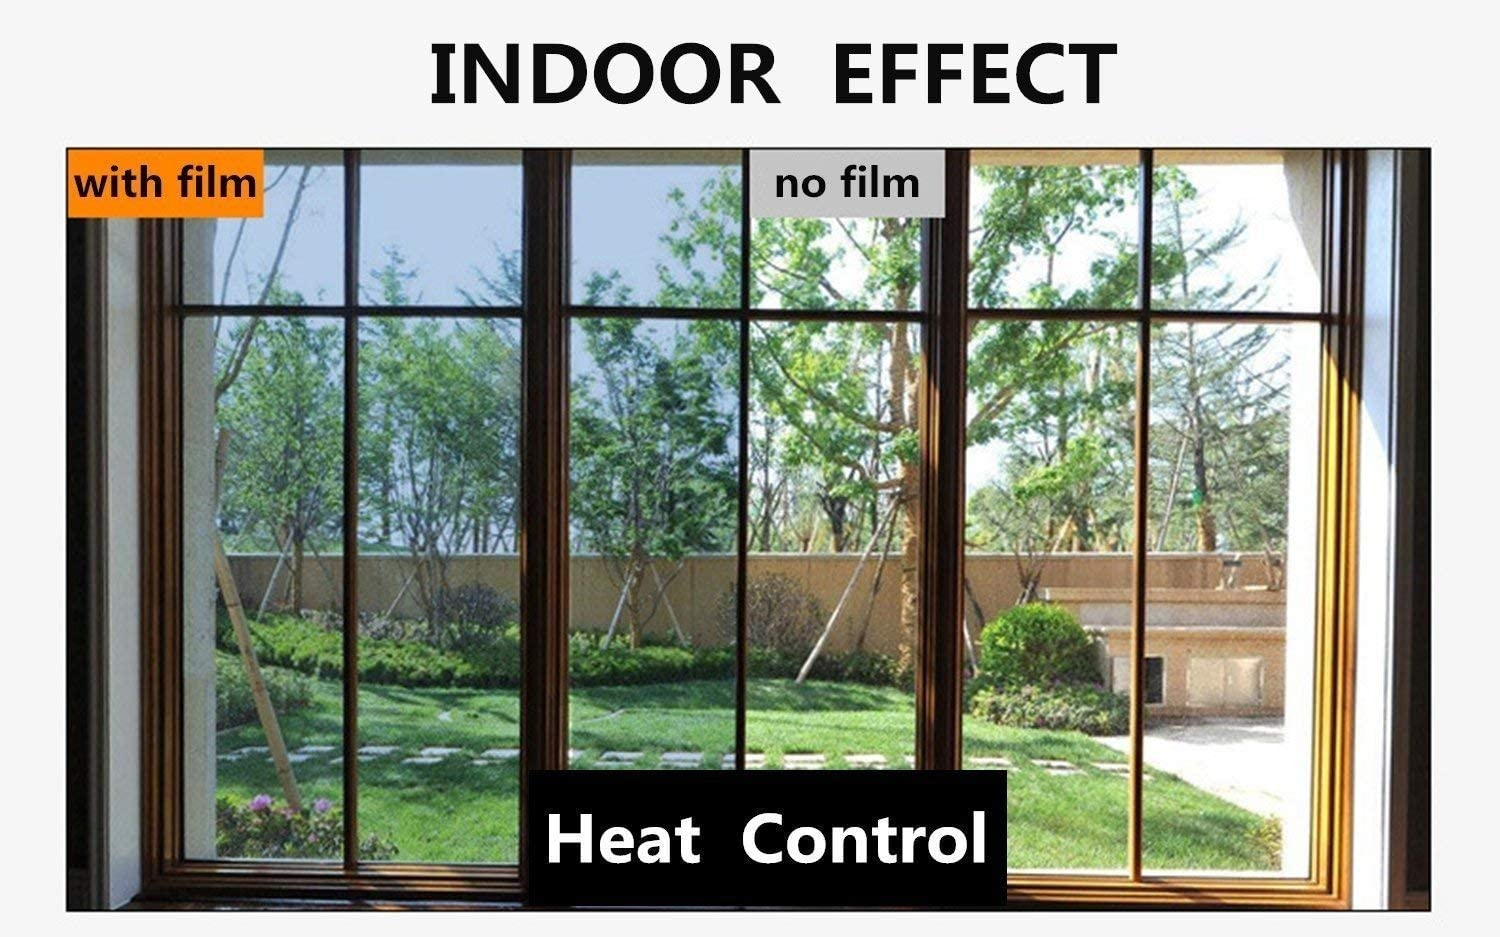 Timeet Window Film One Way Mirror Reflective Anti UV Self Adhesive Solar Film Decorative Static Cling Heat Control Privacy Window Tint for Home and Office (17.7 x 78.7,Silver)